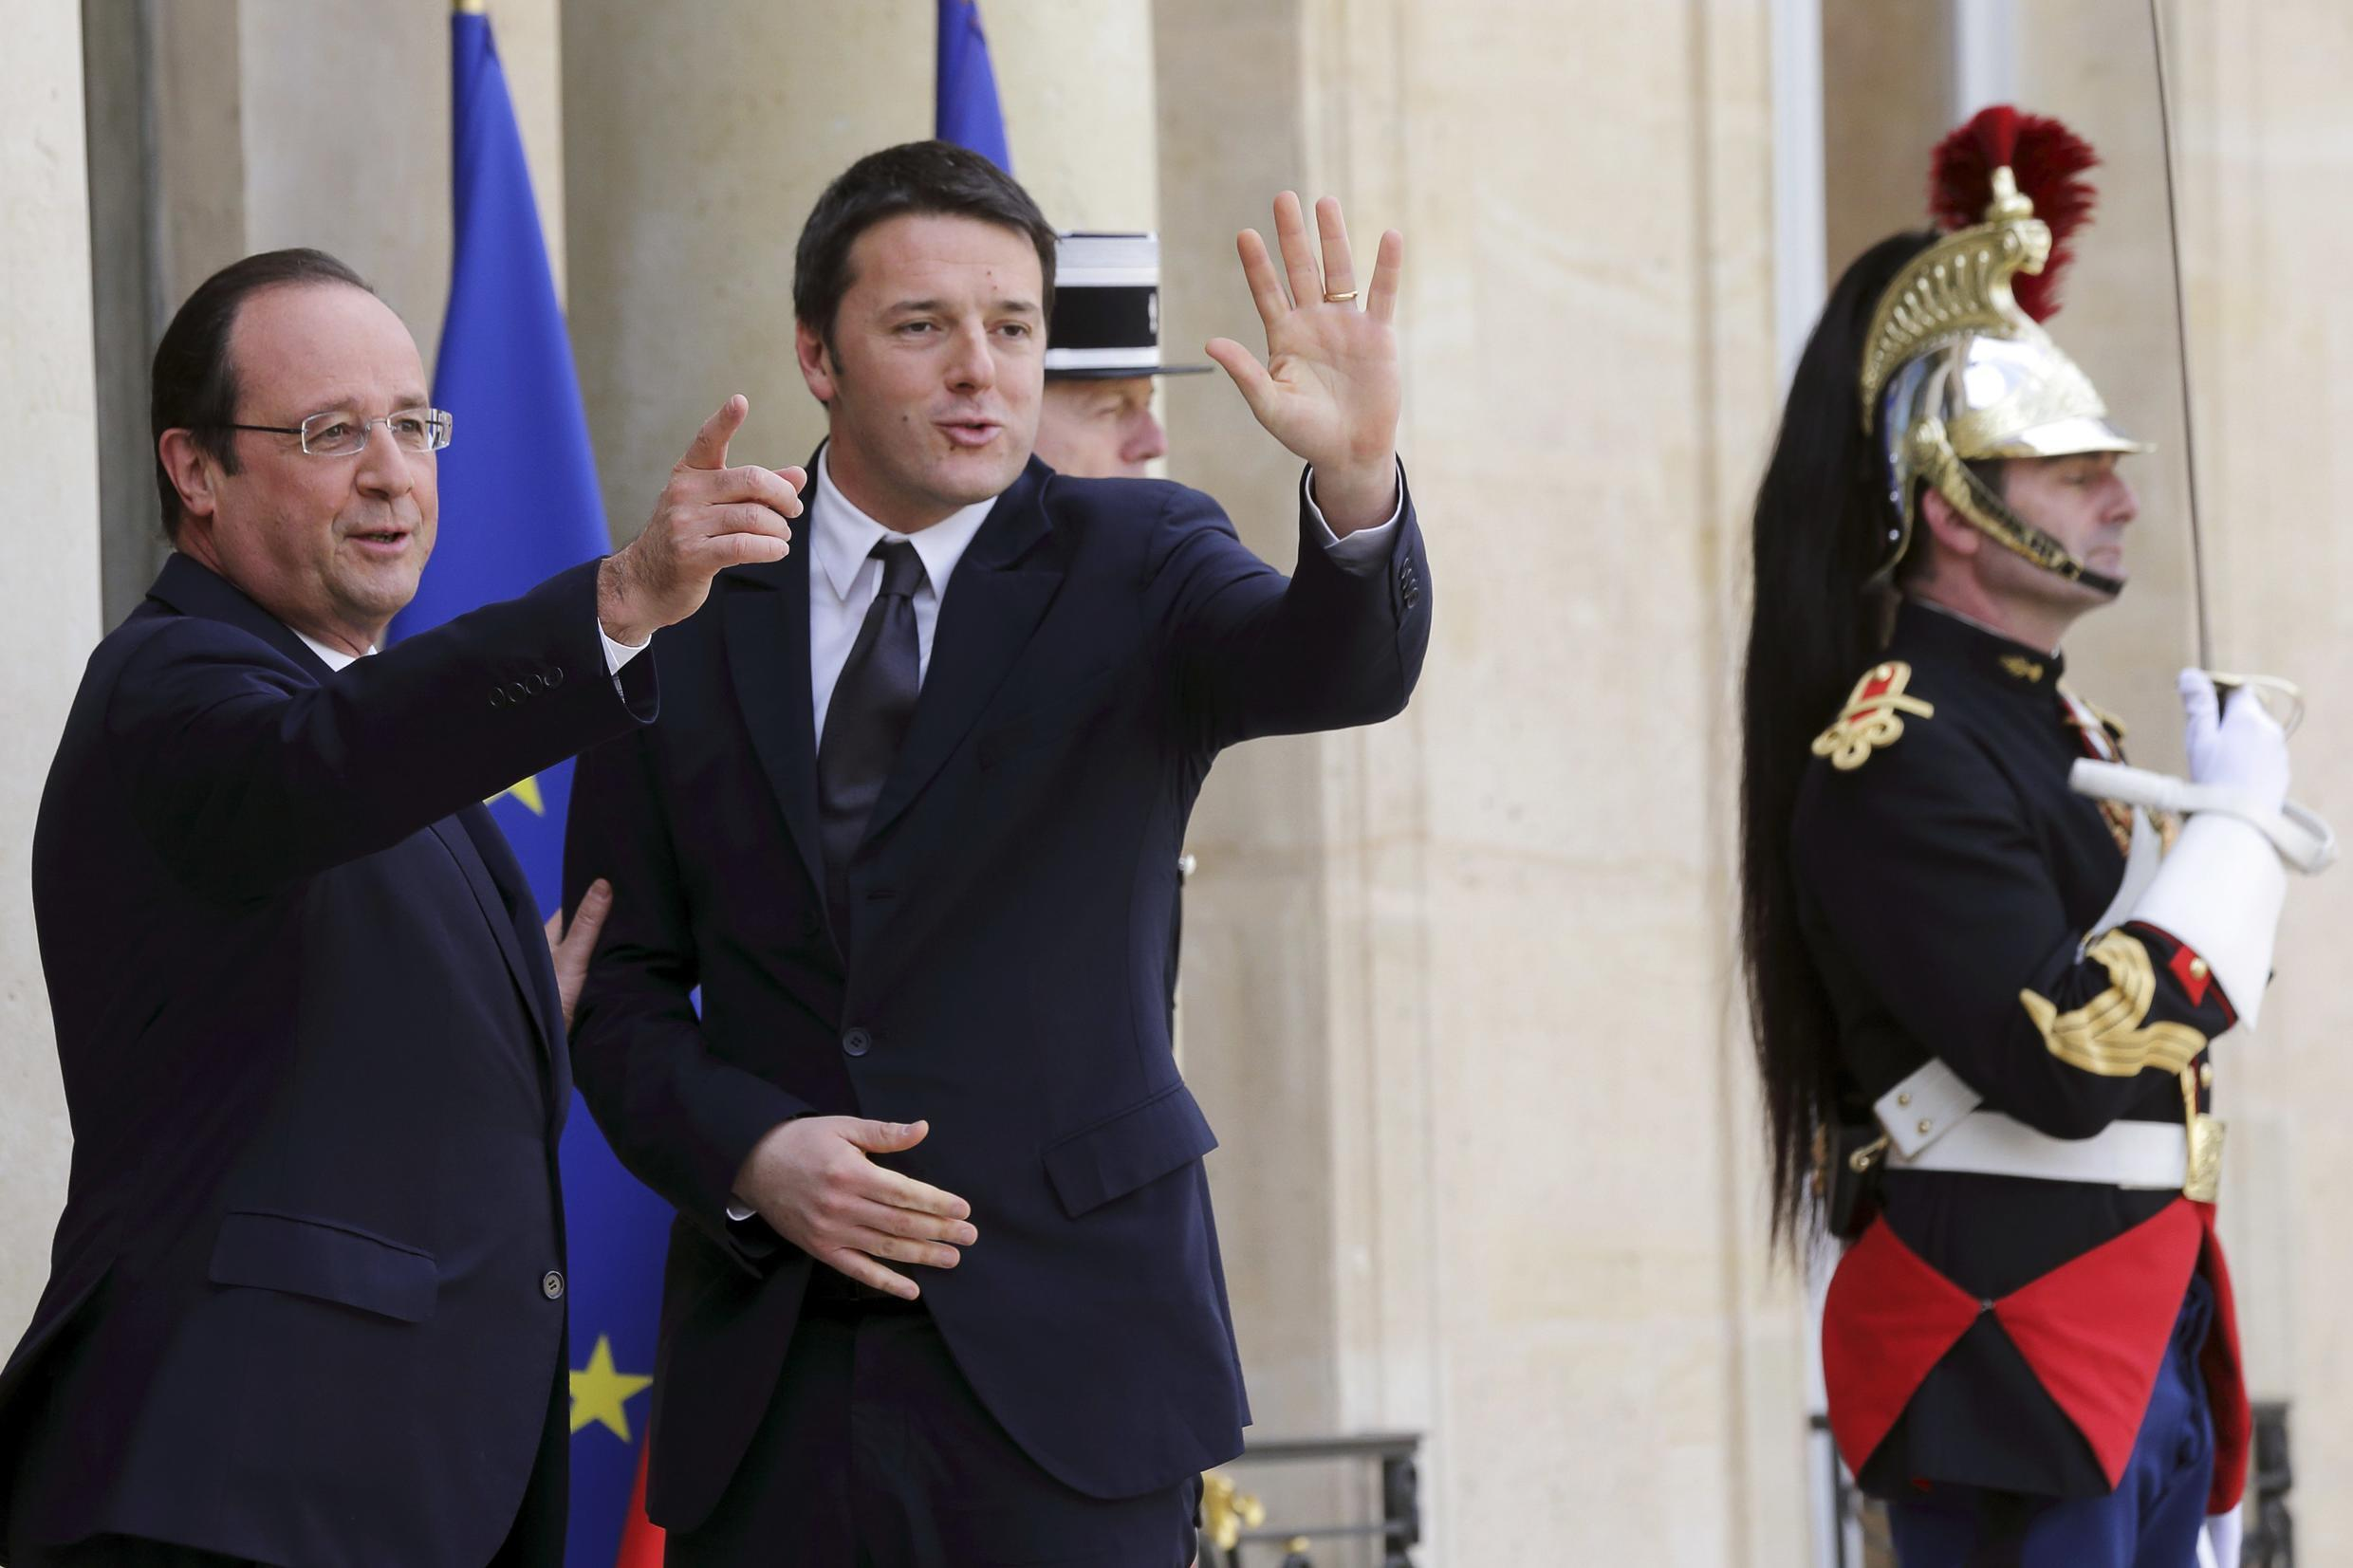 French President françois Hollande with Italian Prime Minister Matteo  Renzi (C) at the Elysée presidential palace in March